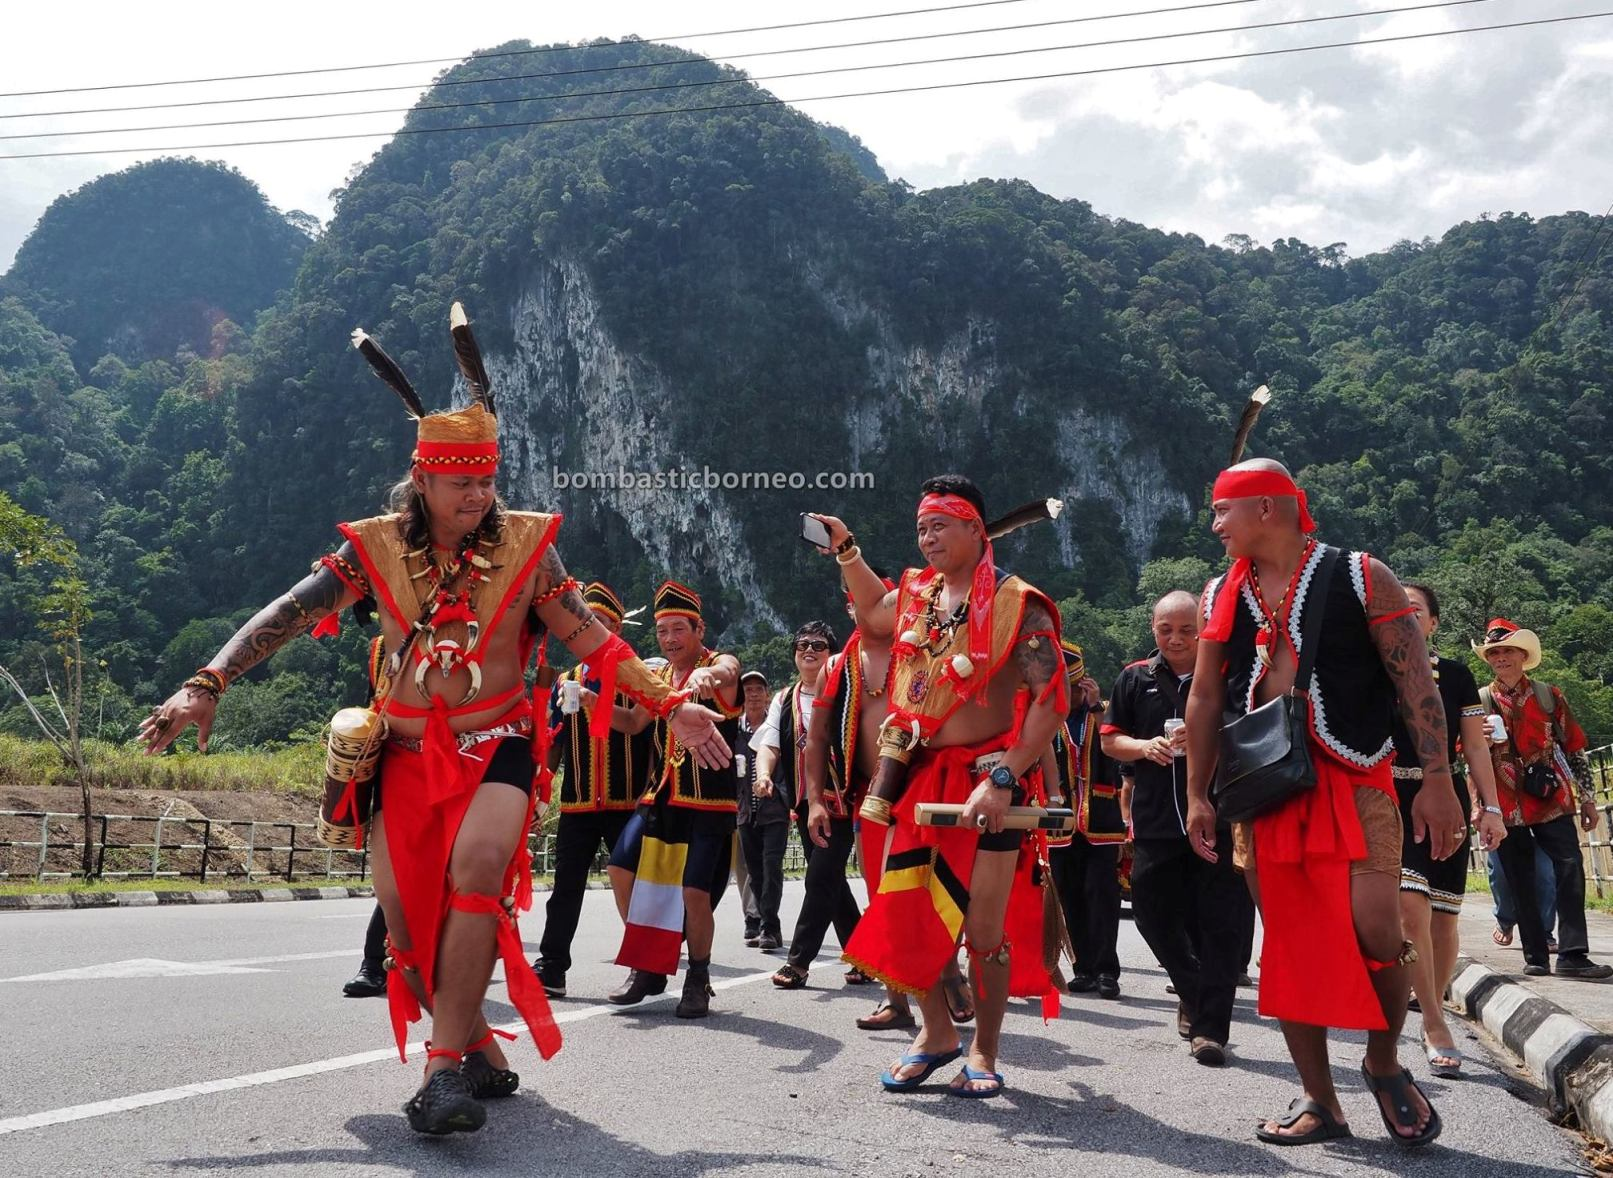 authentic, dayak bidayuh, tribal, culture, native, Gawai harvest festival, Padawan, Kuching, Borneo, tourism, travel guide, cross border, 探索婆罗洲游踪, 古晋砂拉越比达友族, 马来西亚达雅丰收节,